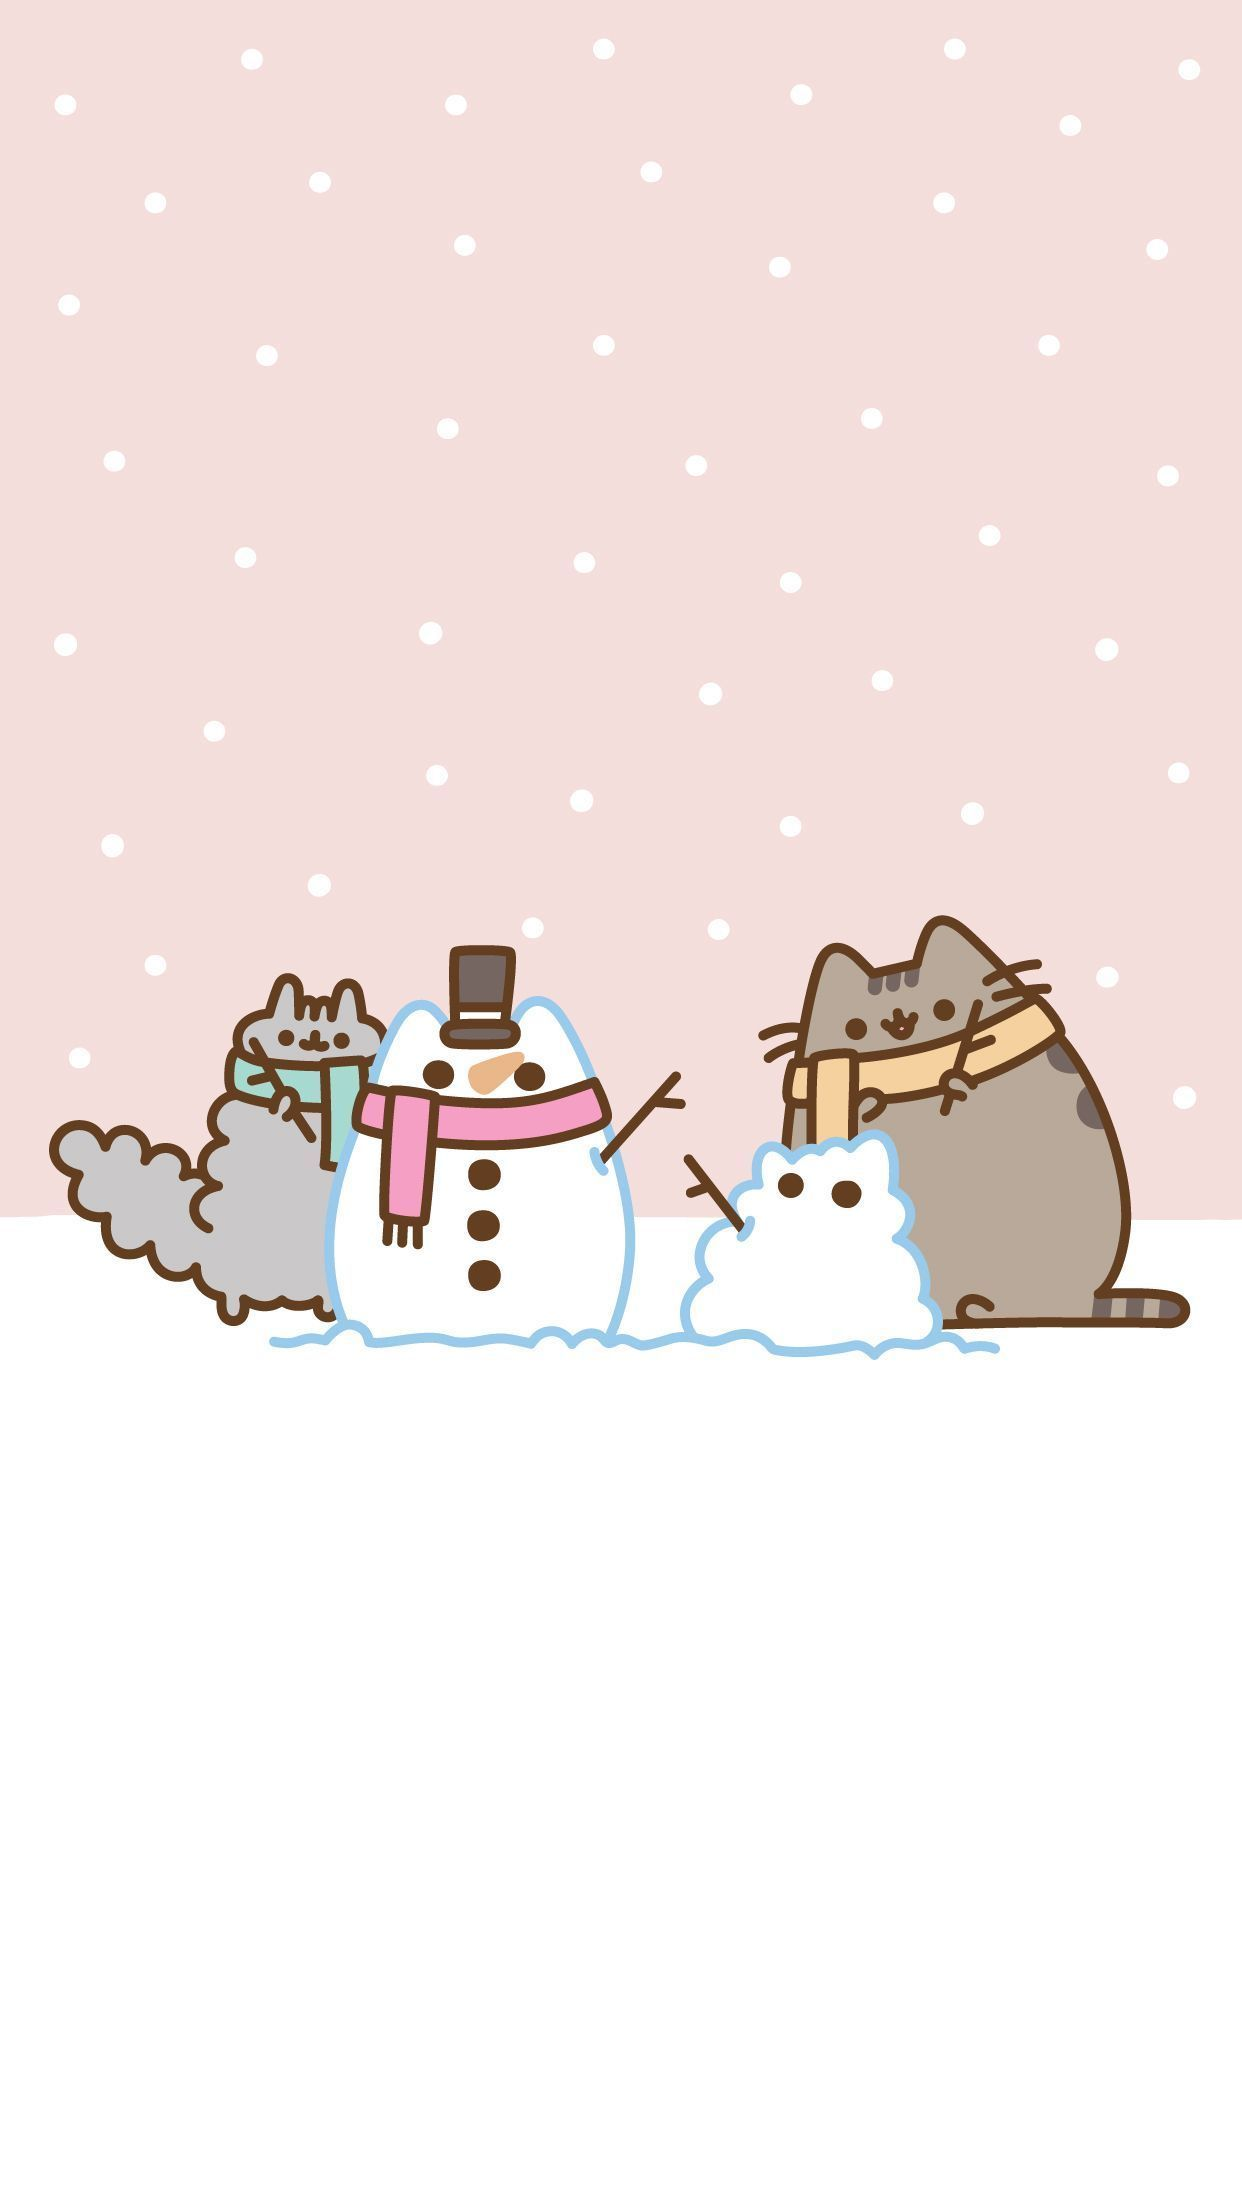 iPhone Free Pusheen Christmas Wallpaper #IphoneWallpapers #takinggreatpicswithaniphone #christmaswallpaperiphone